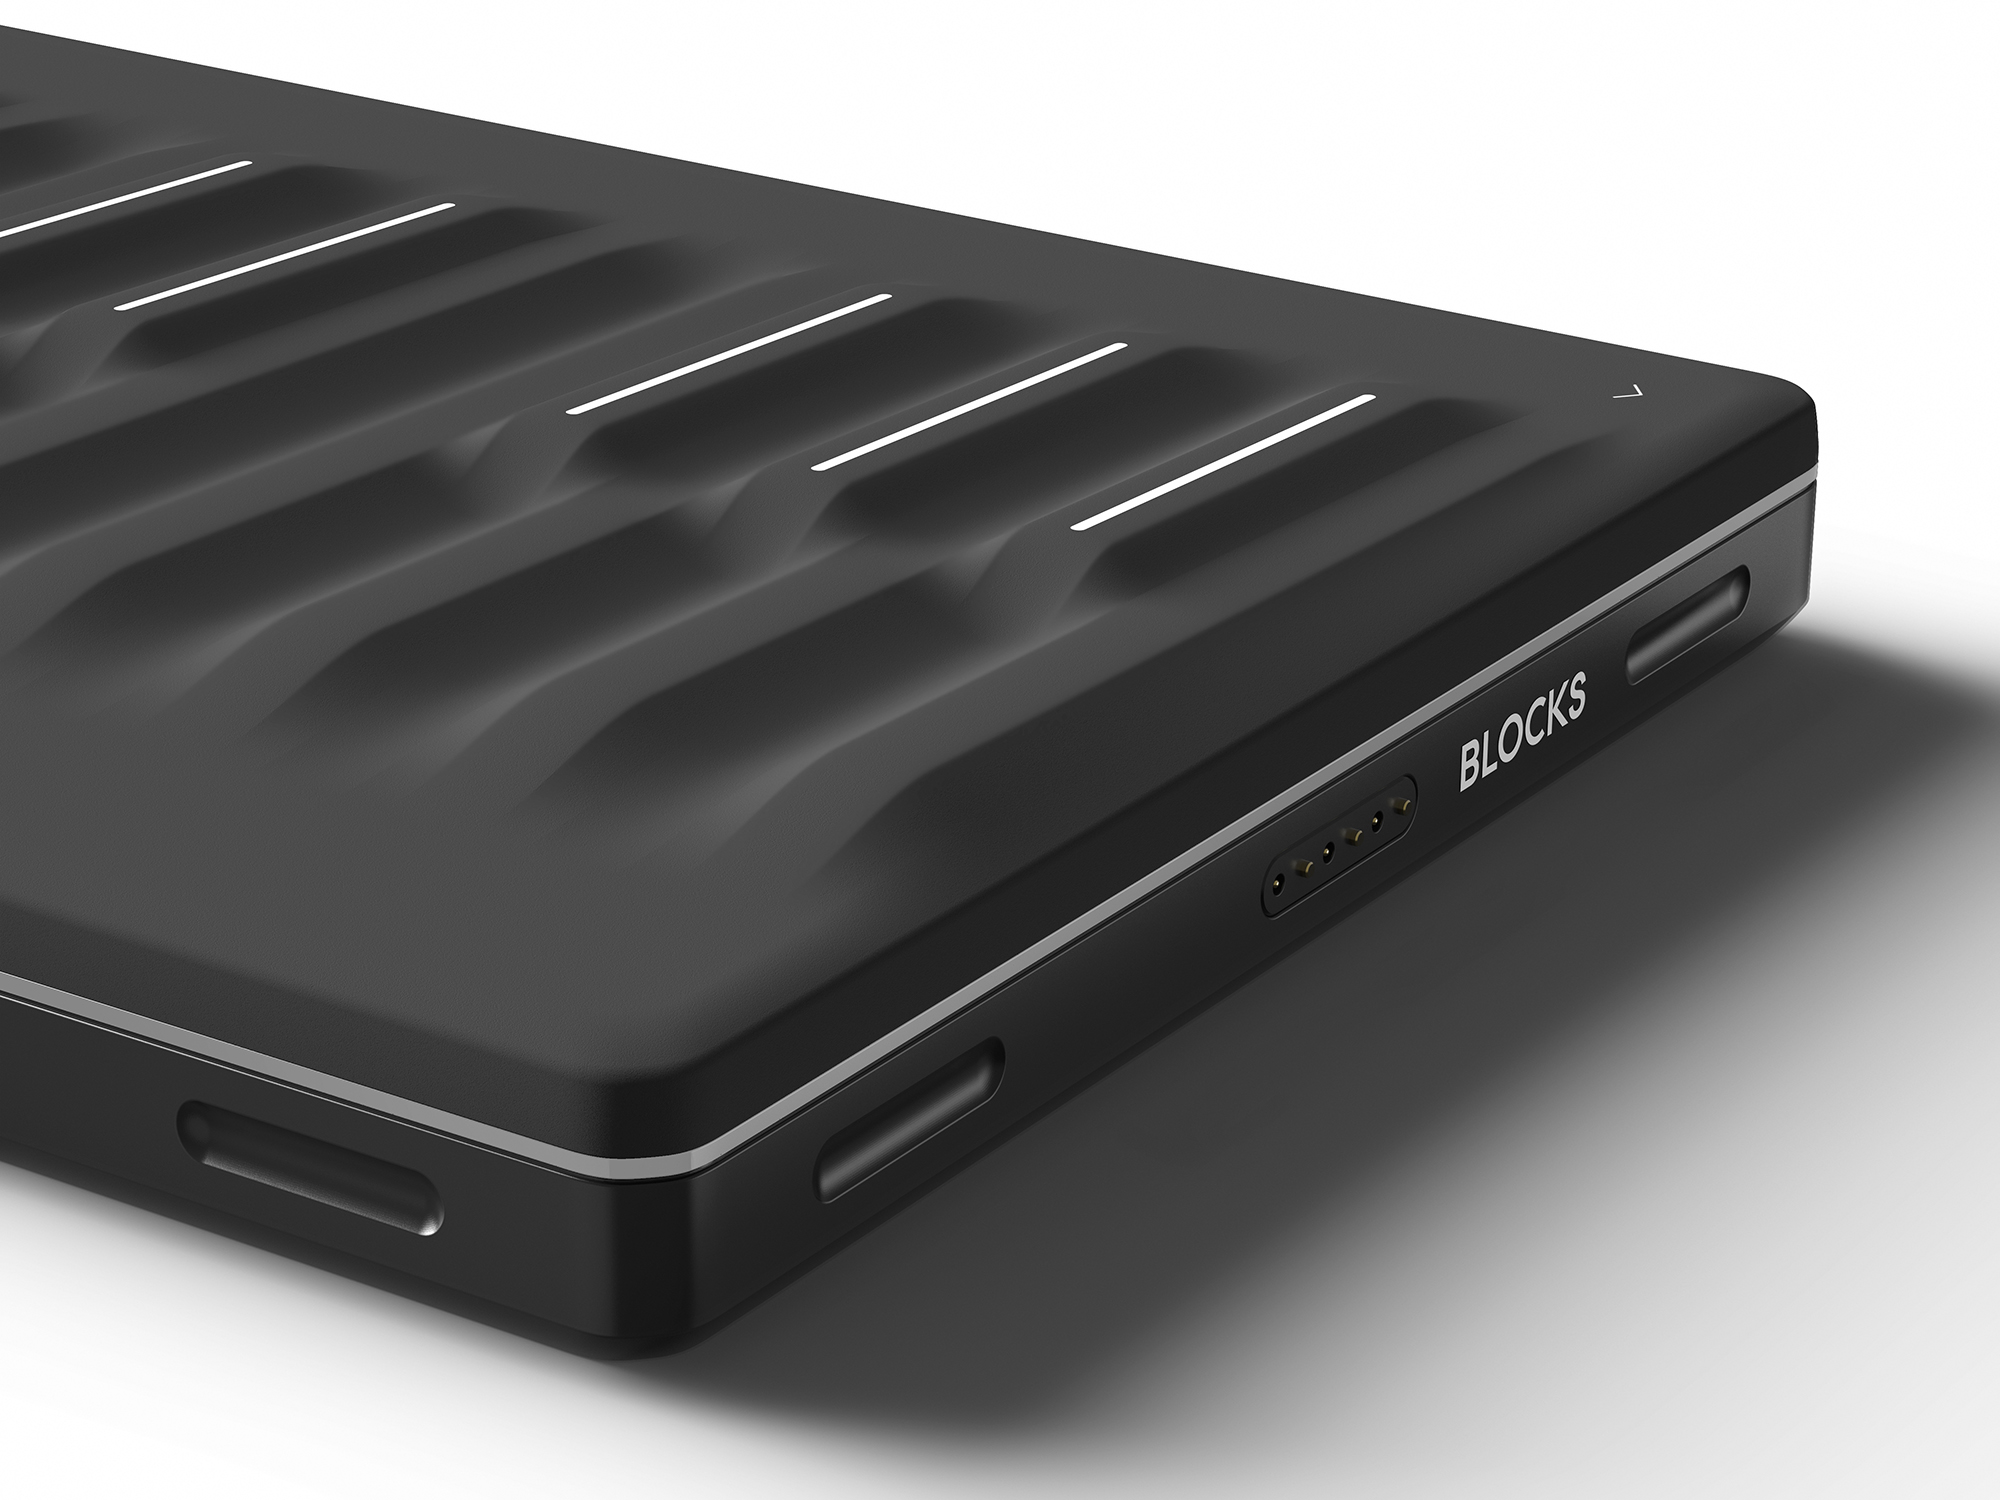 Roli Seaboard Next Generation Keyboard Now Available From $300